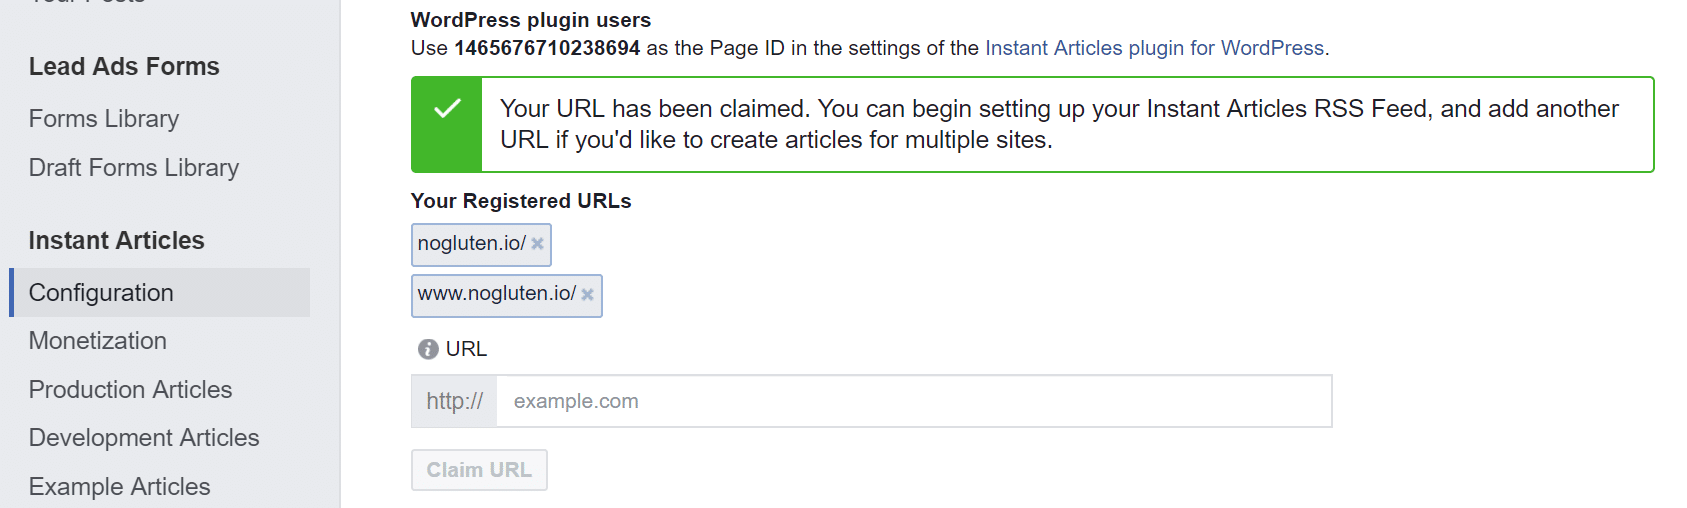 Claimed Facebook Instant Articles URL